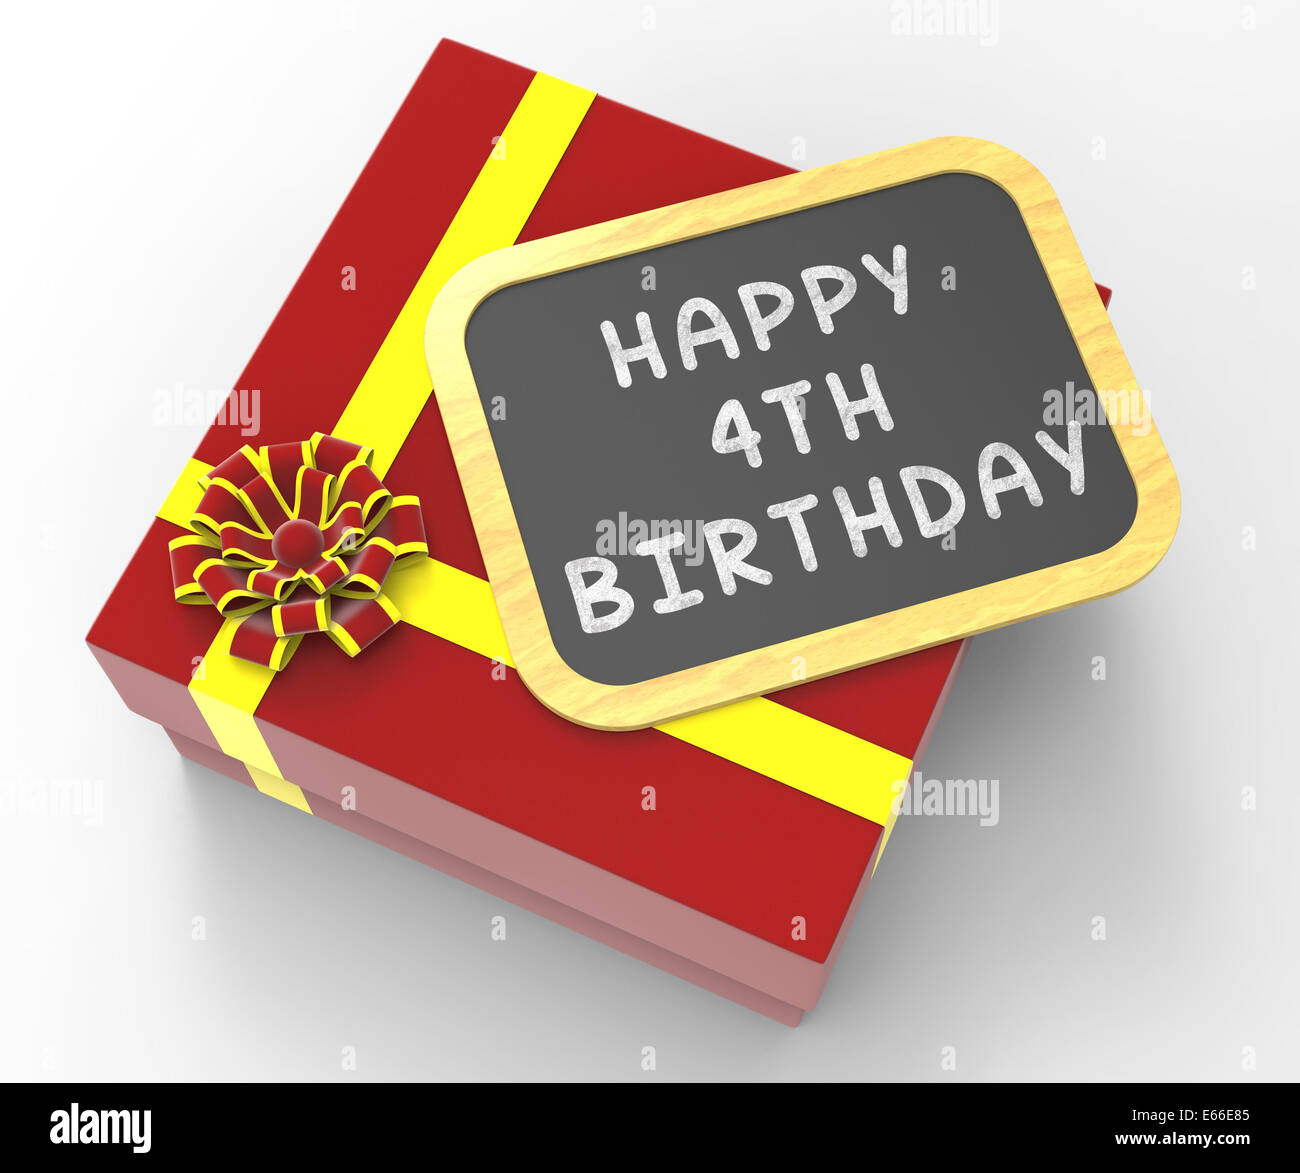 Meaning of fourth - Happy Fourth Birthday Present Meaning Greetings Celebrations And Festivities